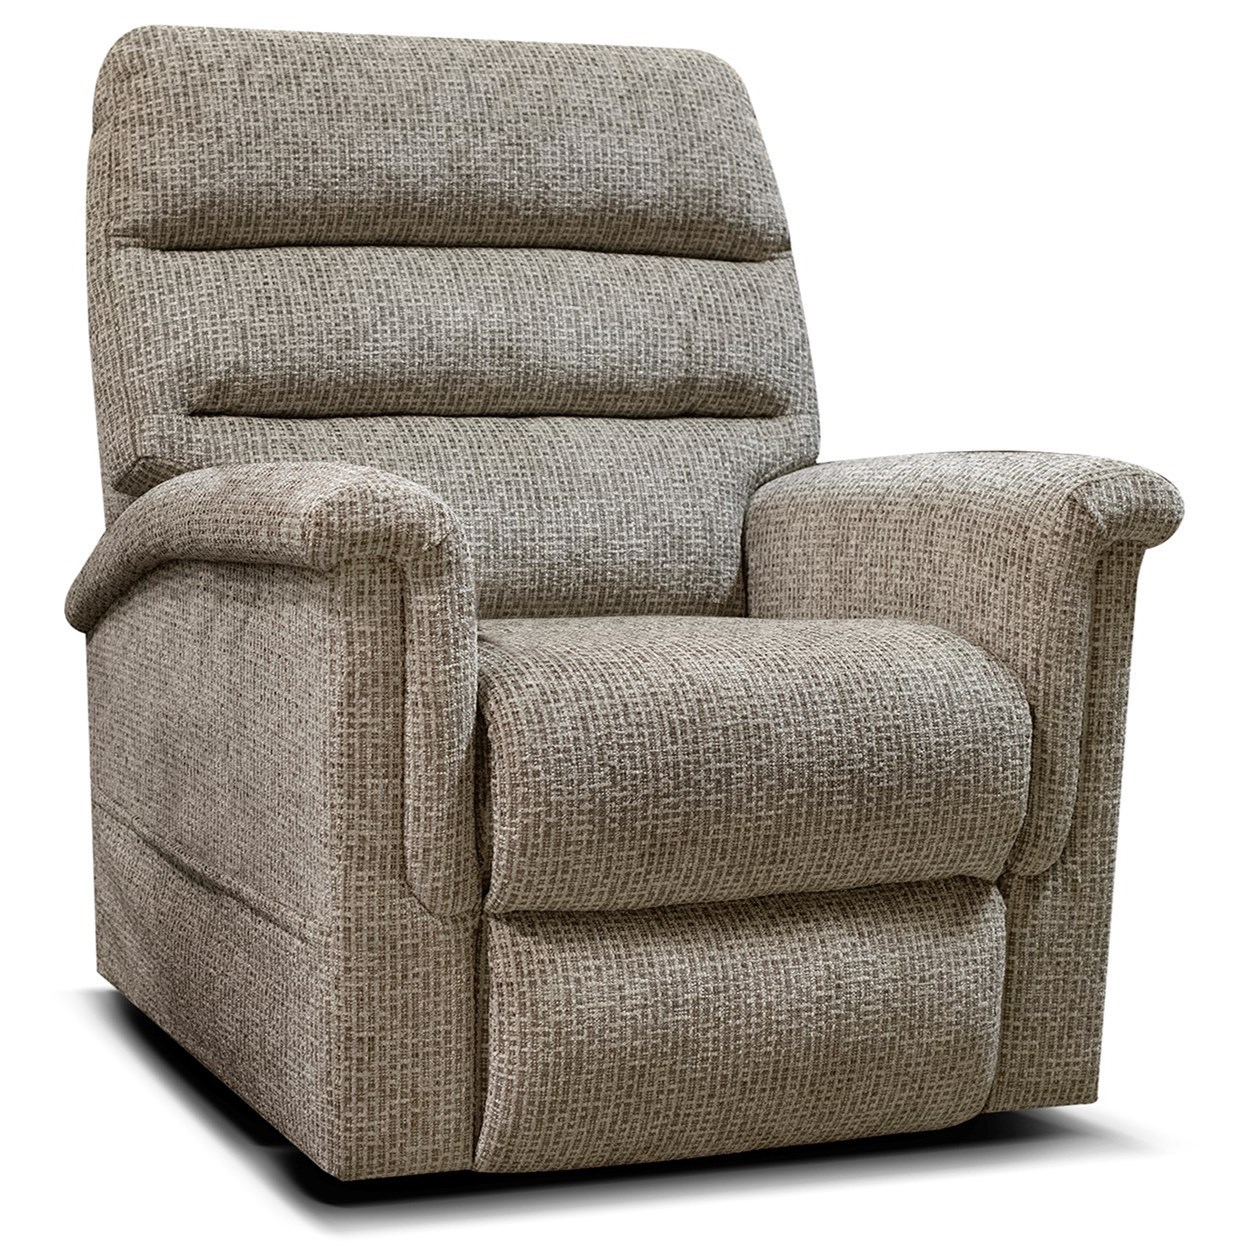 Picture of: England Ez7g00 Casual Reclining Lift Chair Reeds Furniture Lift Chairs